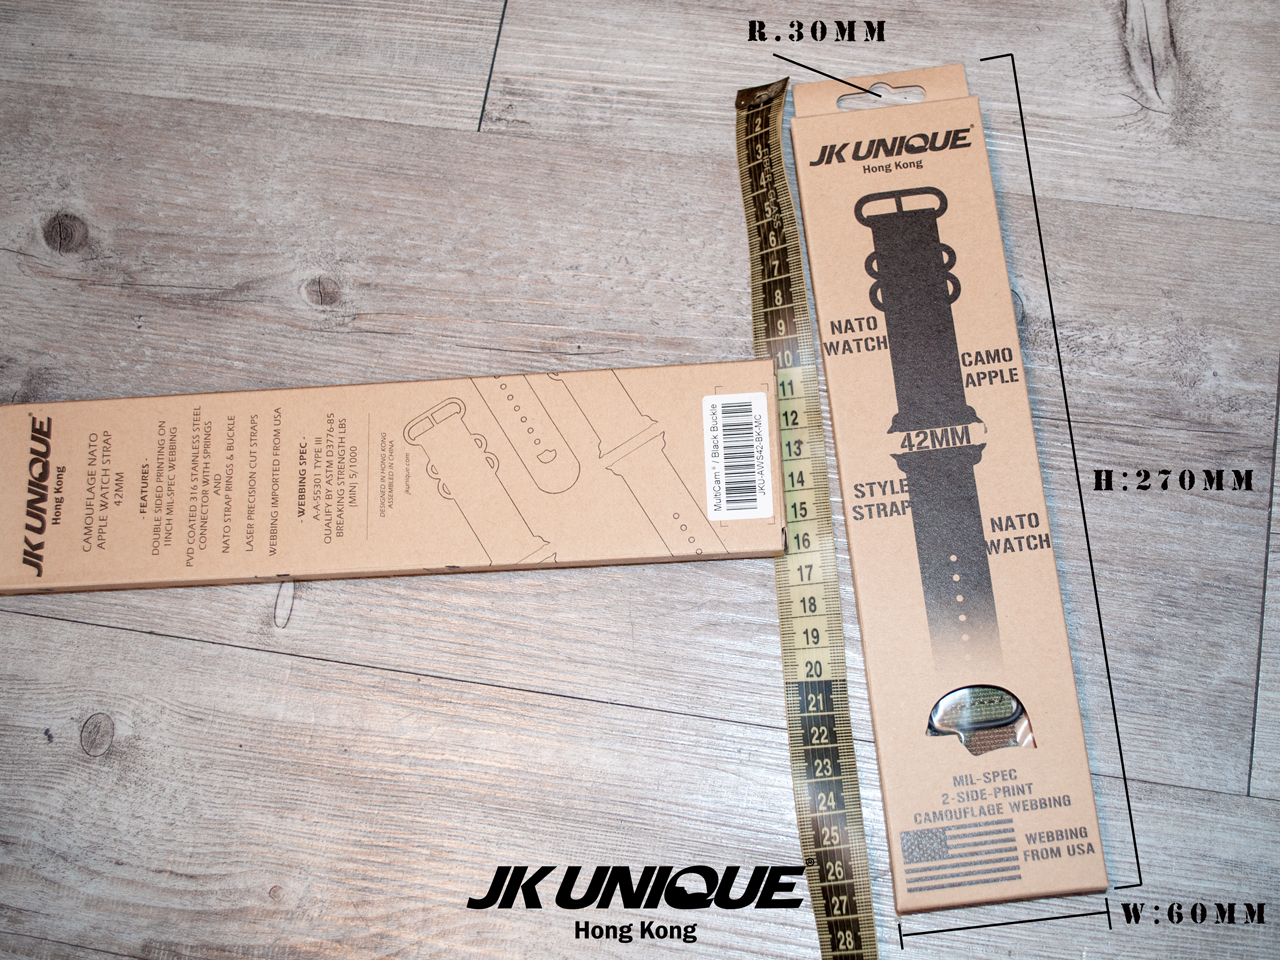 JK-UNIQUE-CAMO-NATO-Style-Apple-Watch-Strap-42mm-39-(1280).jpg